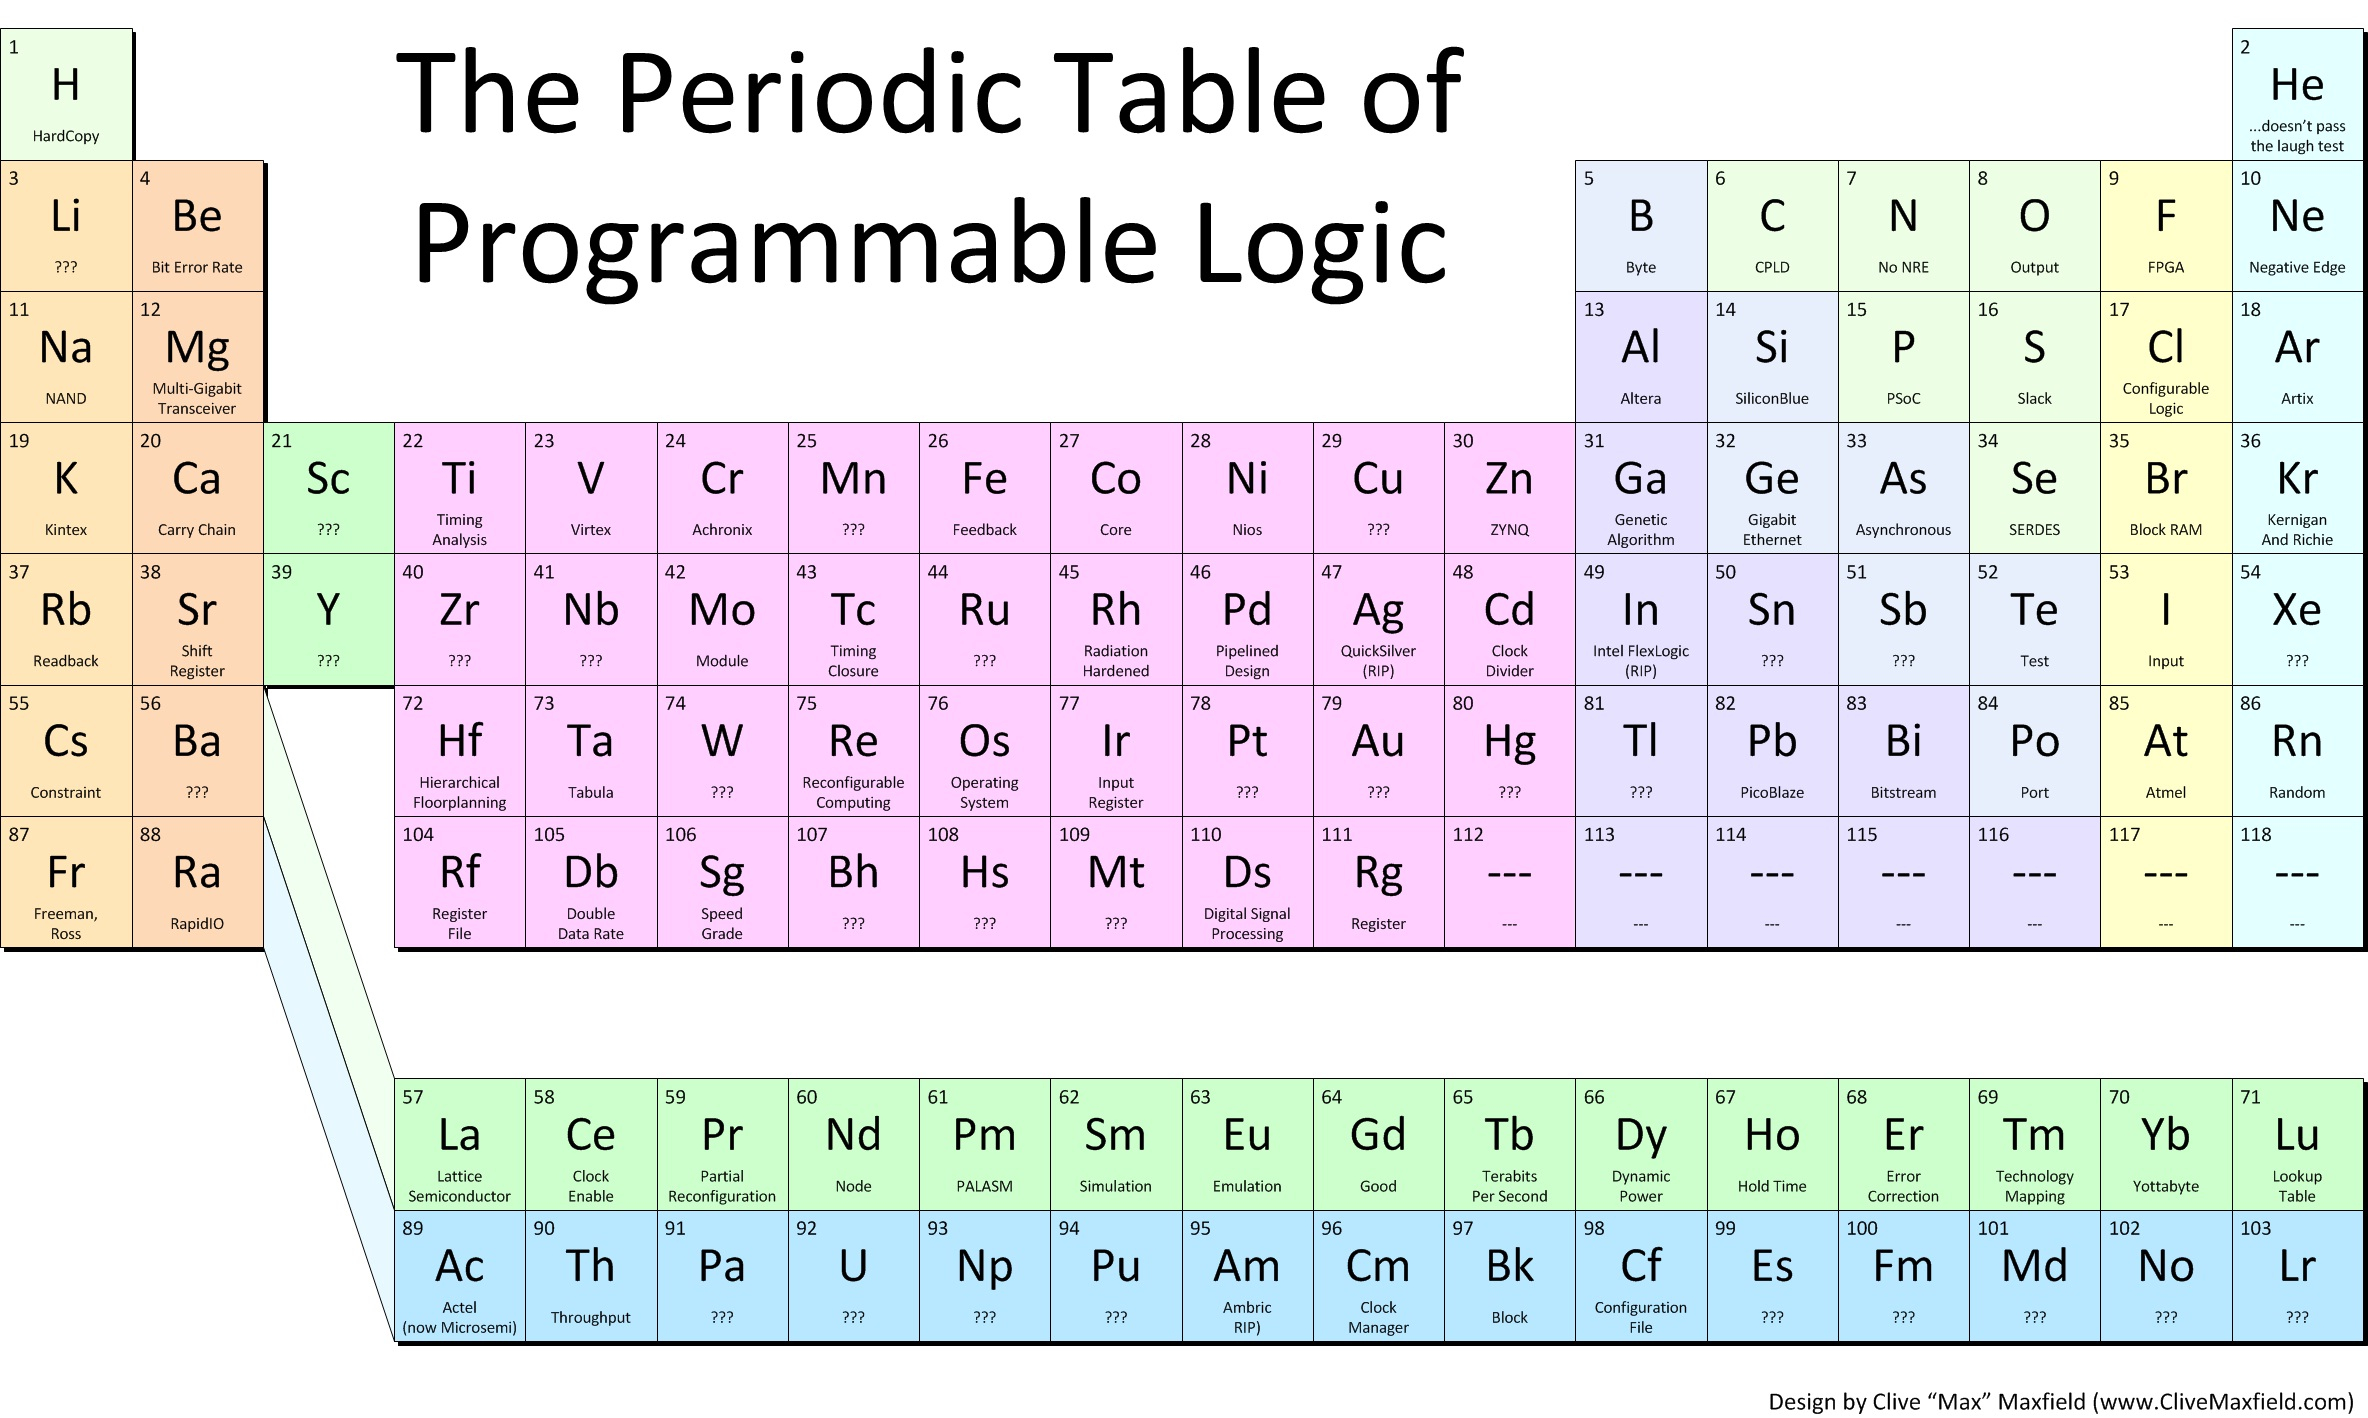 The periodic table of programmable logic rev 1 ee times clivemaxfieldarea51periodic table prog logic v1g gamestrikefo Choice Image